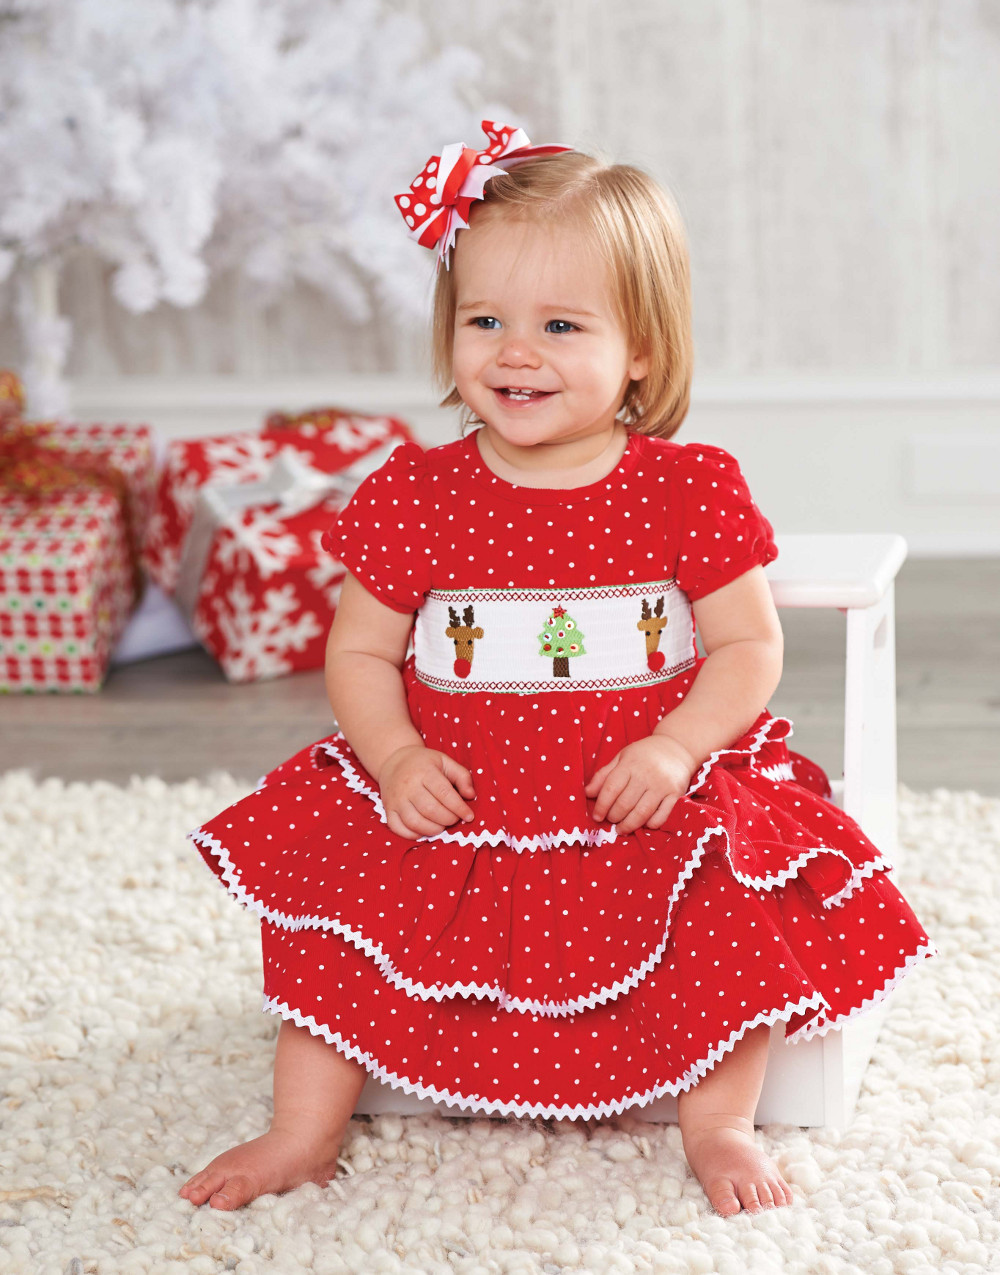 Mud Pie Holiday Dress: Red Girl's Infant or Toddler Corduroy Smocked Chistmas Dress at Sears.com